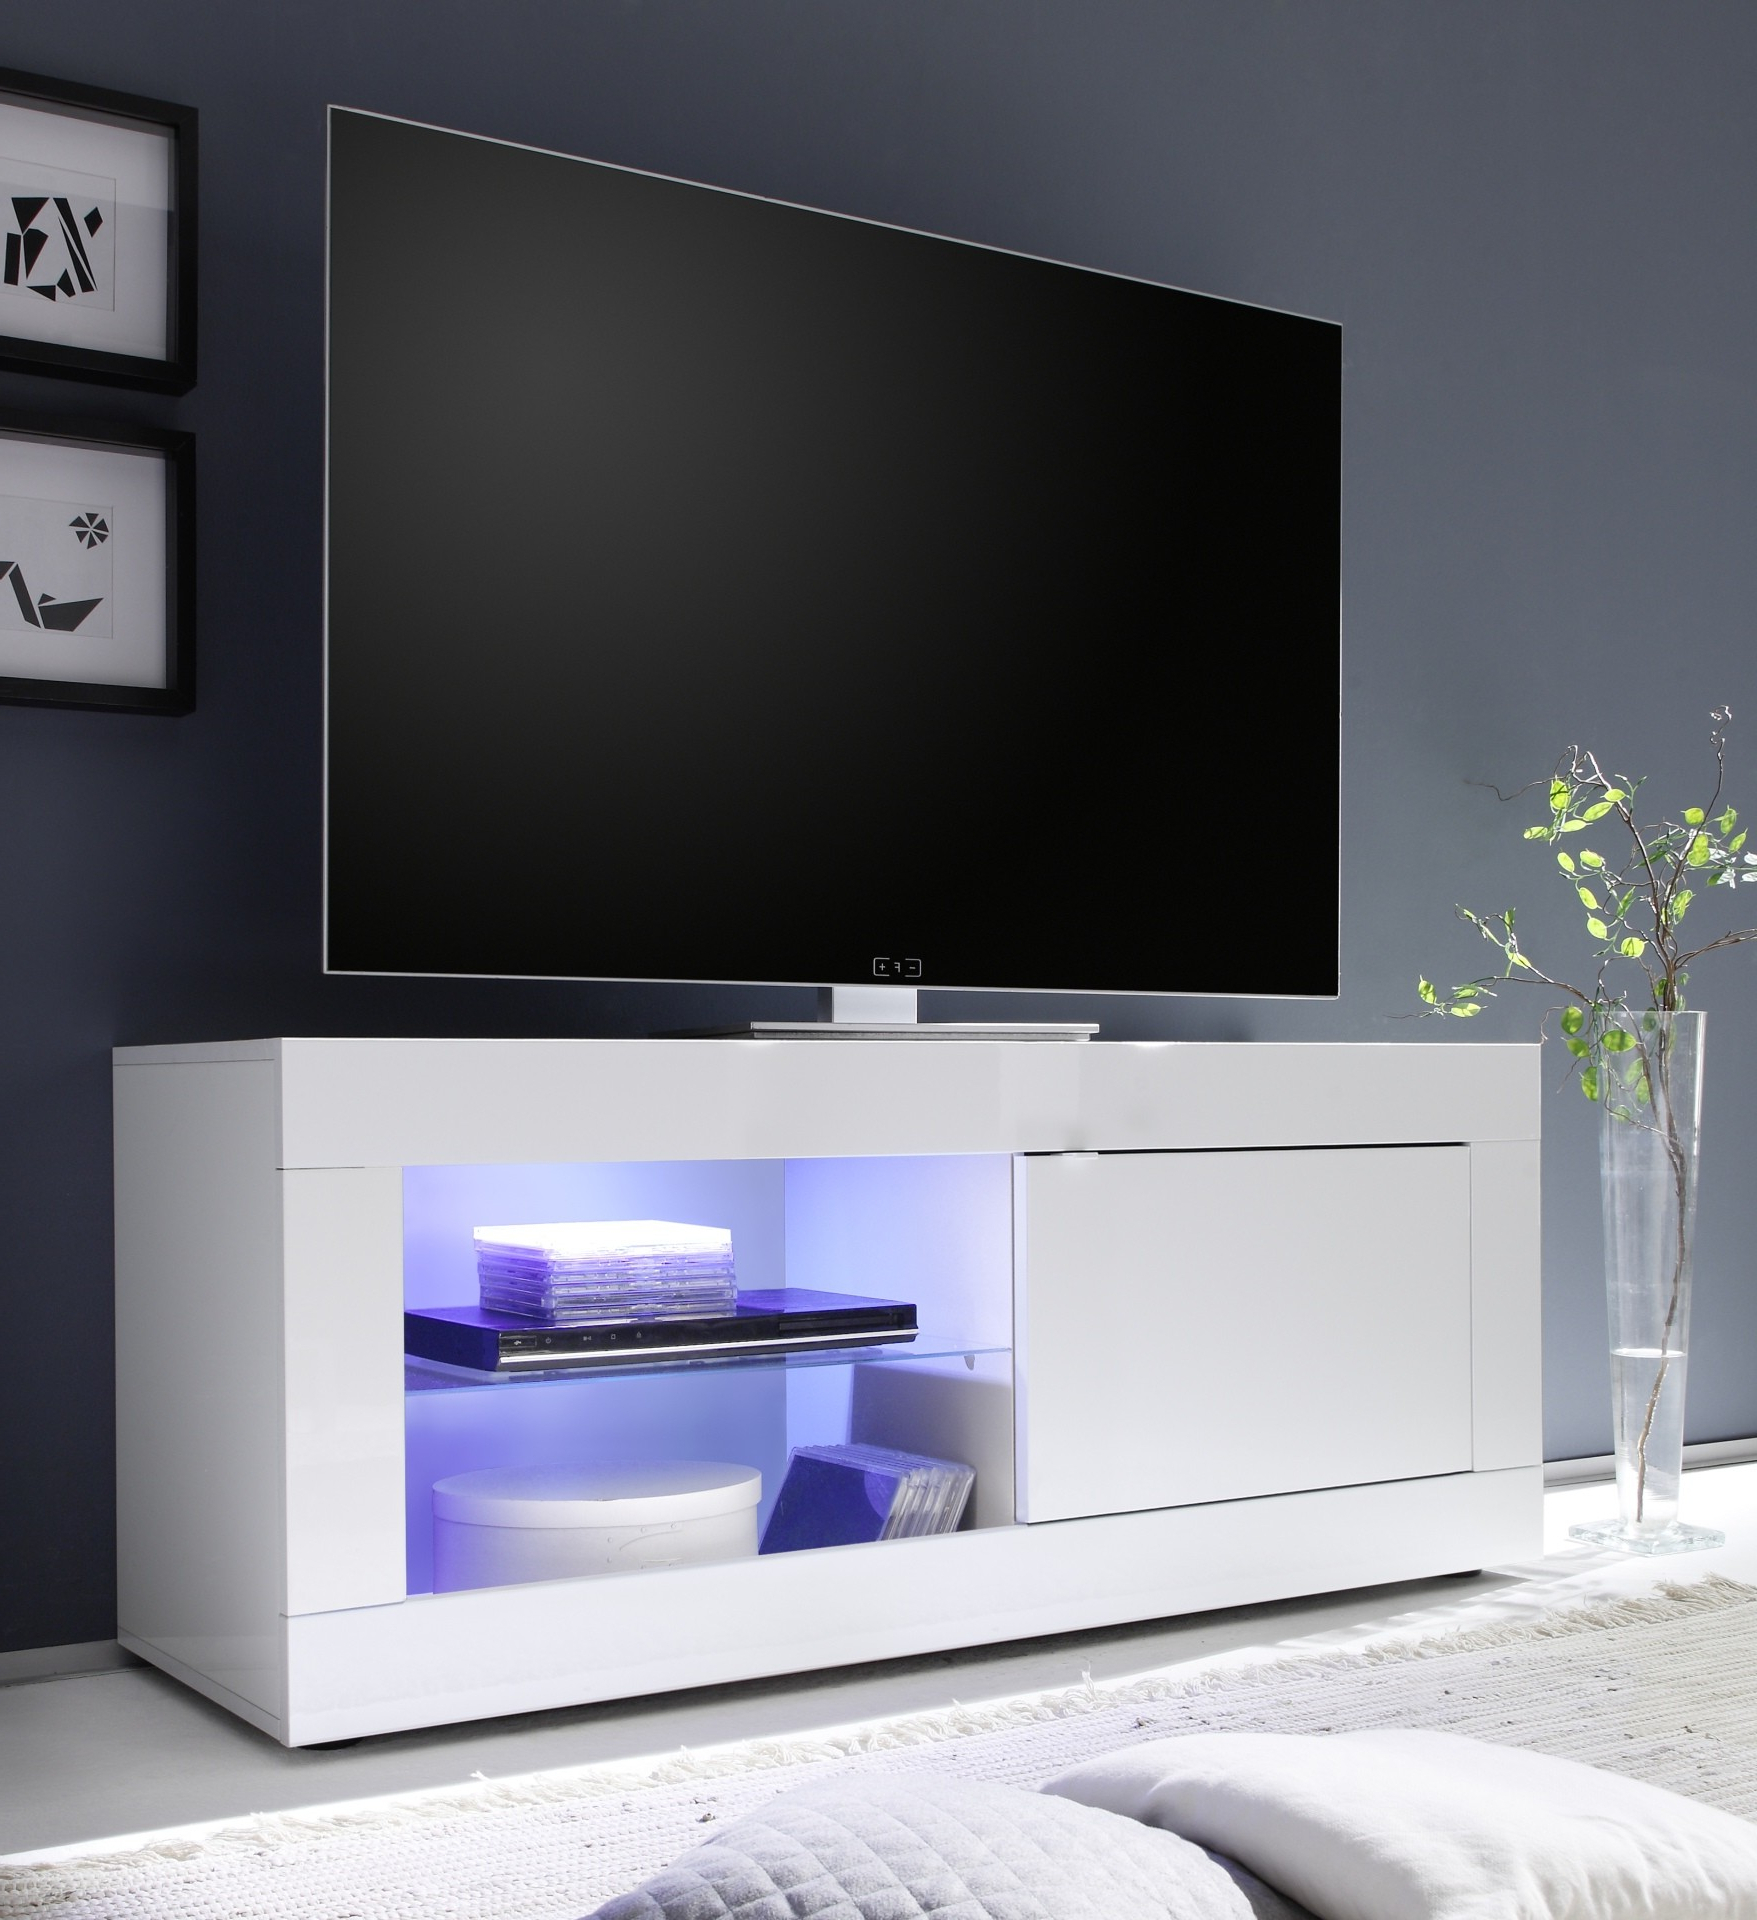 White Gloss Tv Cabinets Throughout Fashionable Dolcevita Gloss Tv Stand – Tv Stands (1235) – Sena Home Furniture (View 2 of 20)